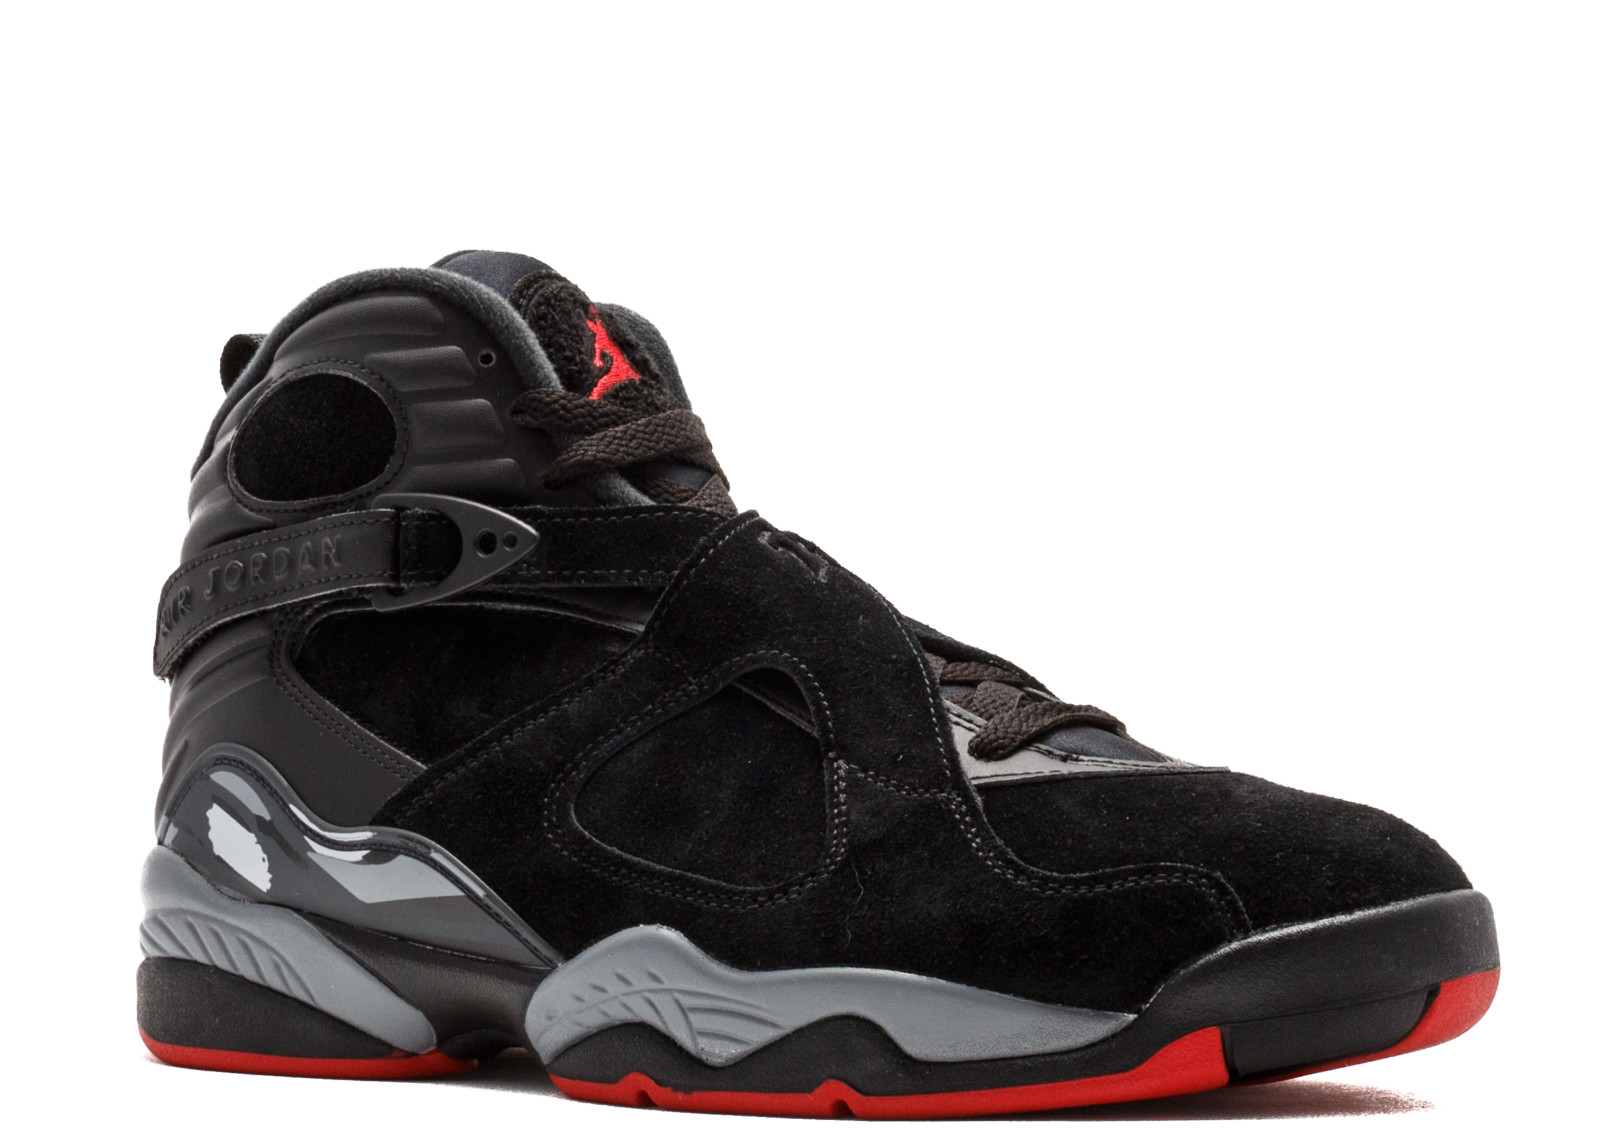 air jordan 8 retro - Click Image to Close